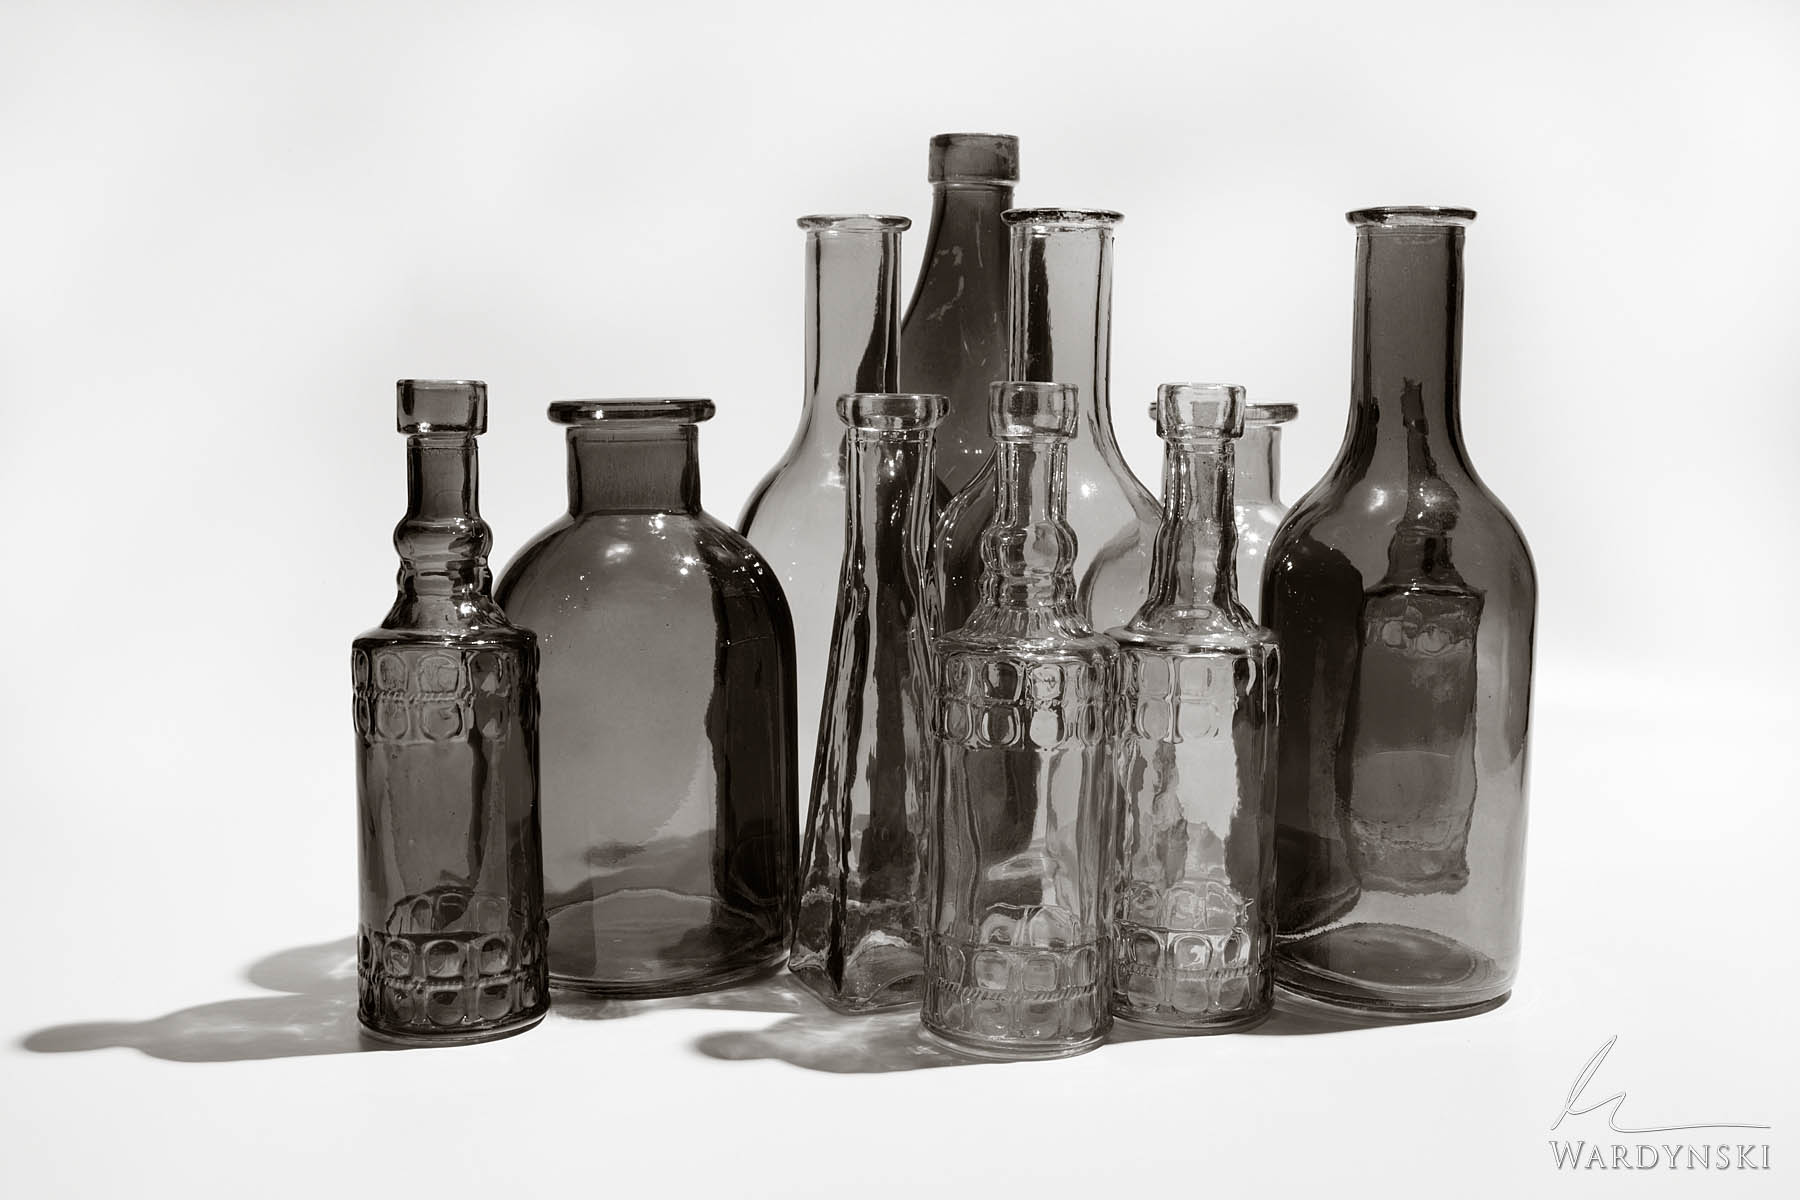 Fine Art Print | Limited Edition of 25 Light travels through multi colored glass bottles in a sepia tone minimal photograph. ©...